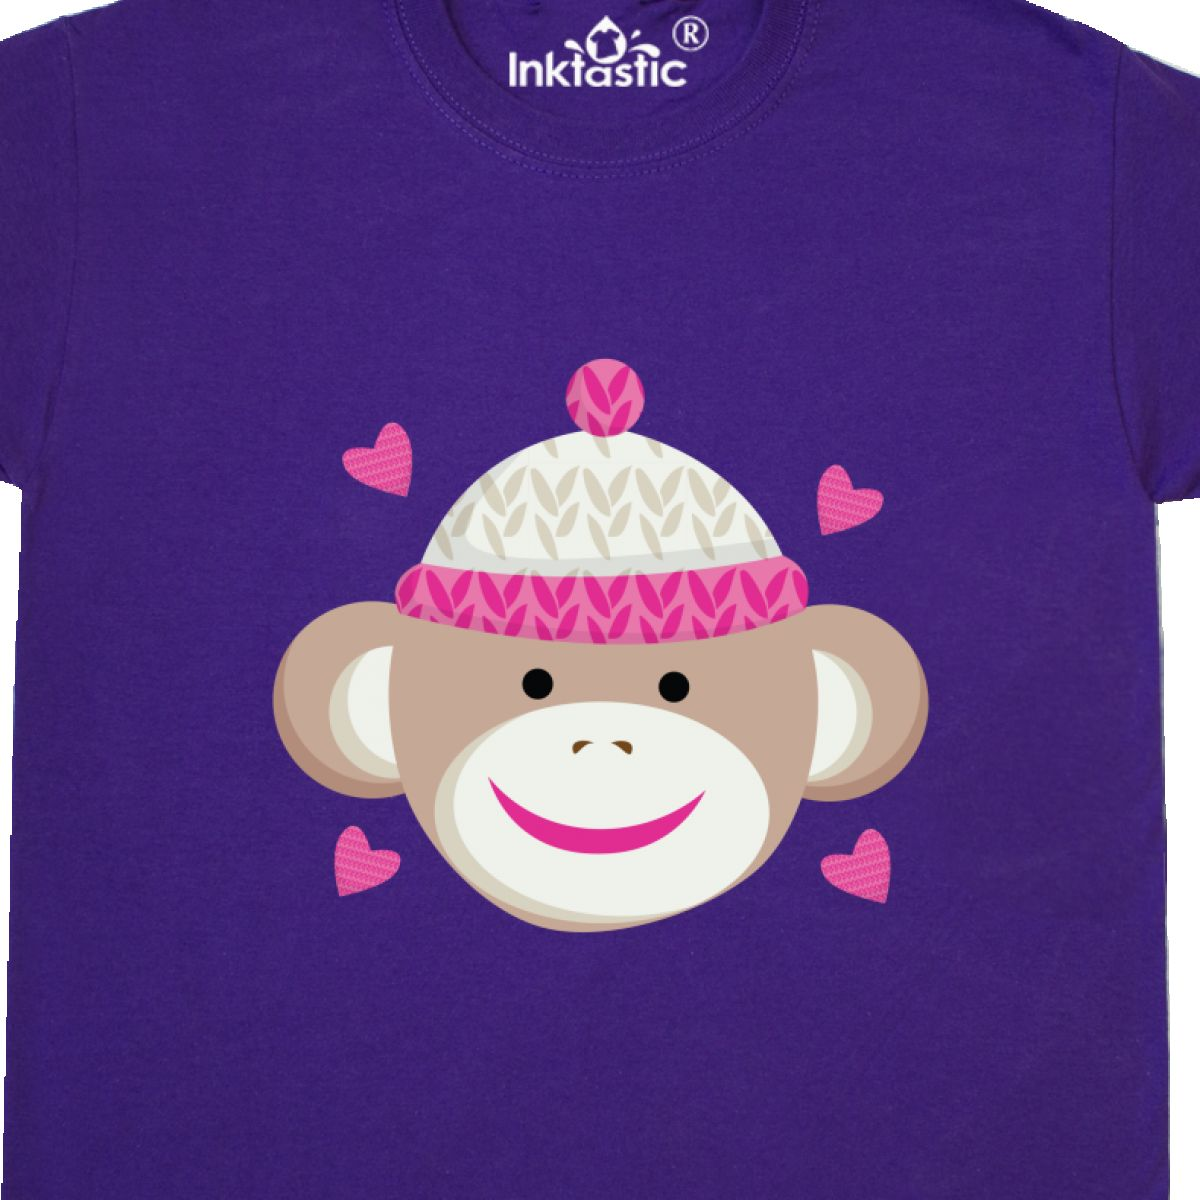 Inktastic Sock Monkey Youth T-Shirt Heart Hearts Pretty Pink Cute Tee Kids Child